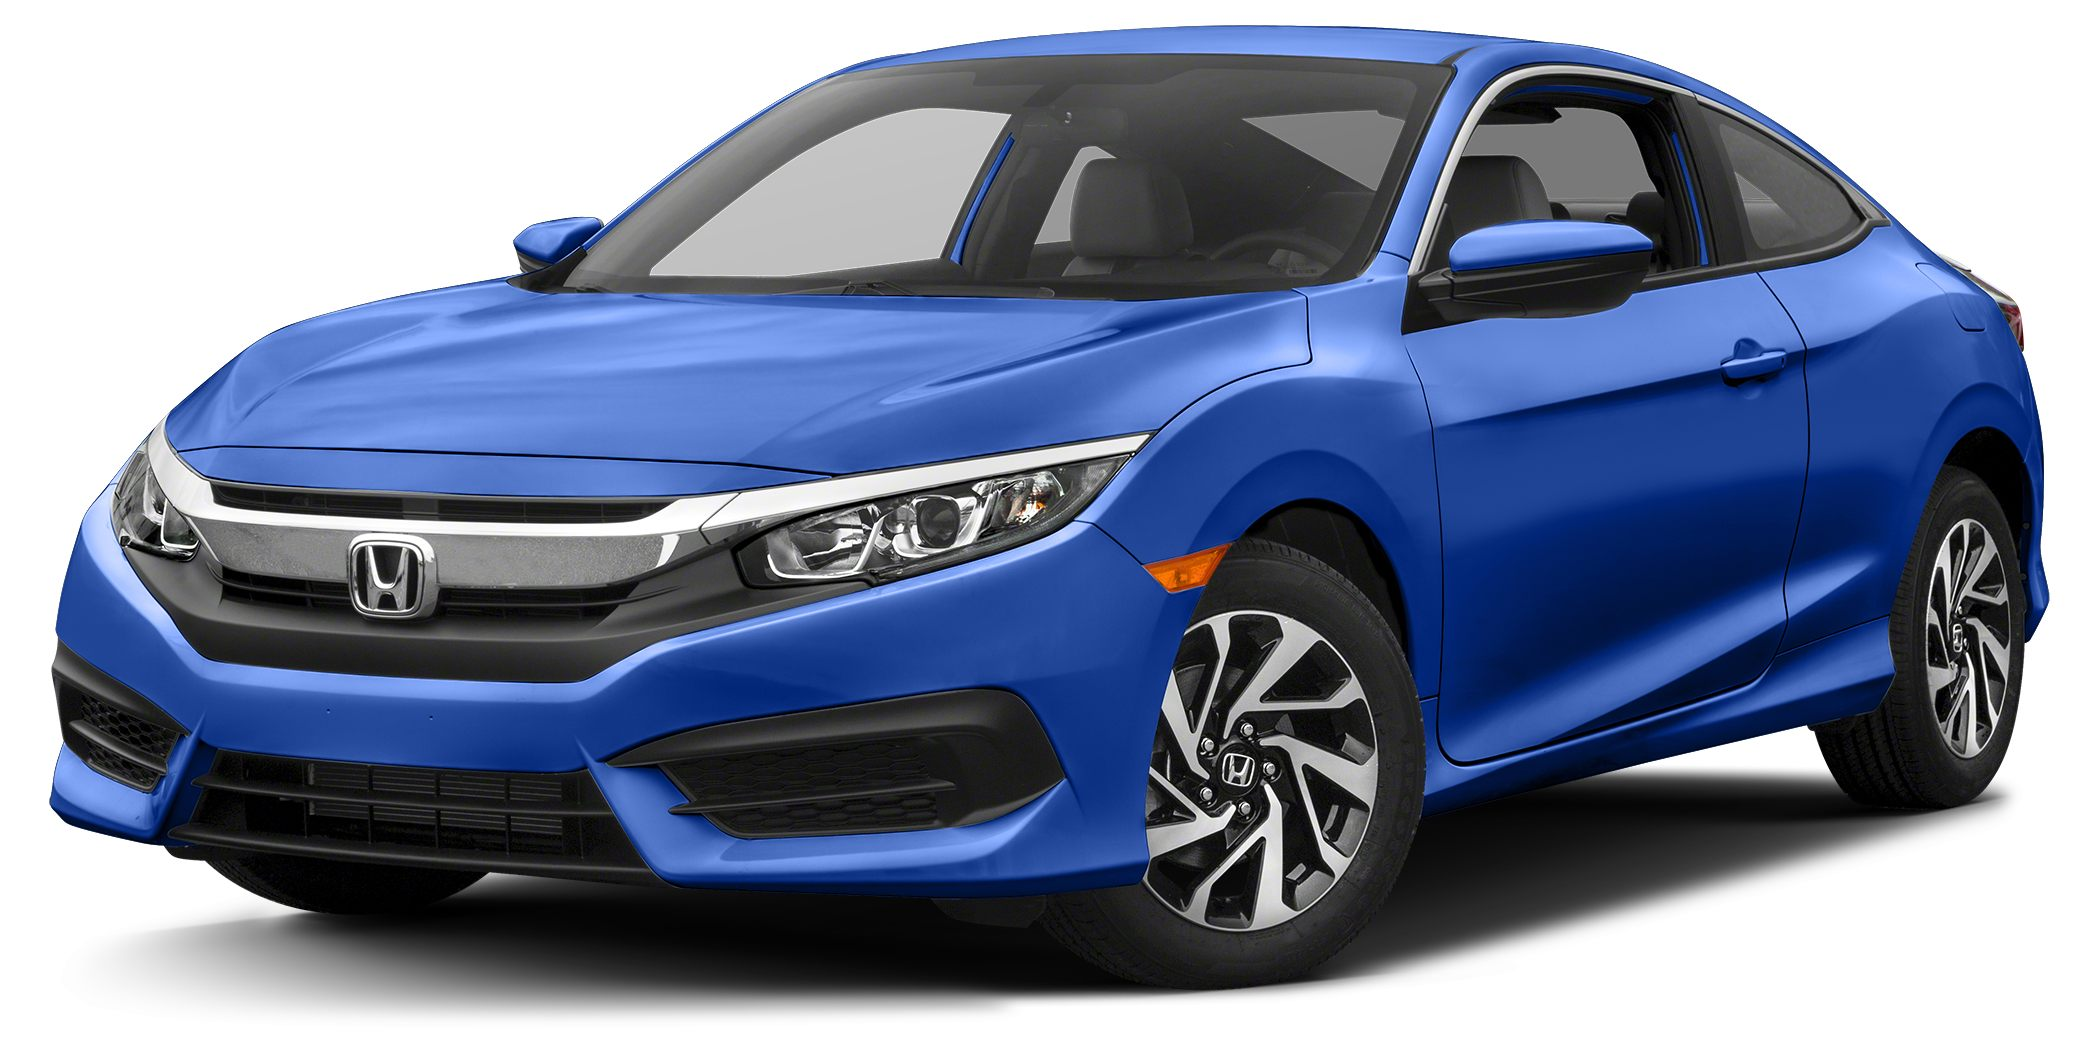 2016 Honda Civic LX Take hold of the road with advanced stability and traction control Stability